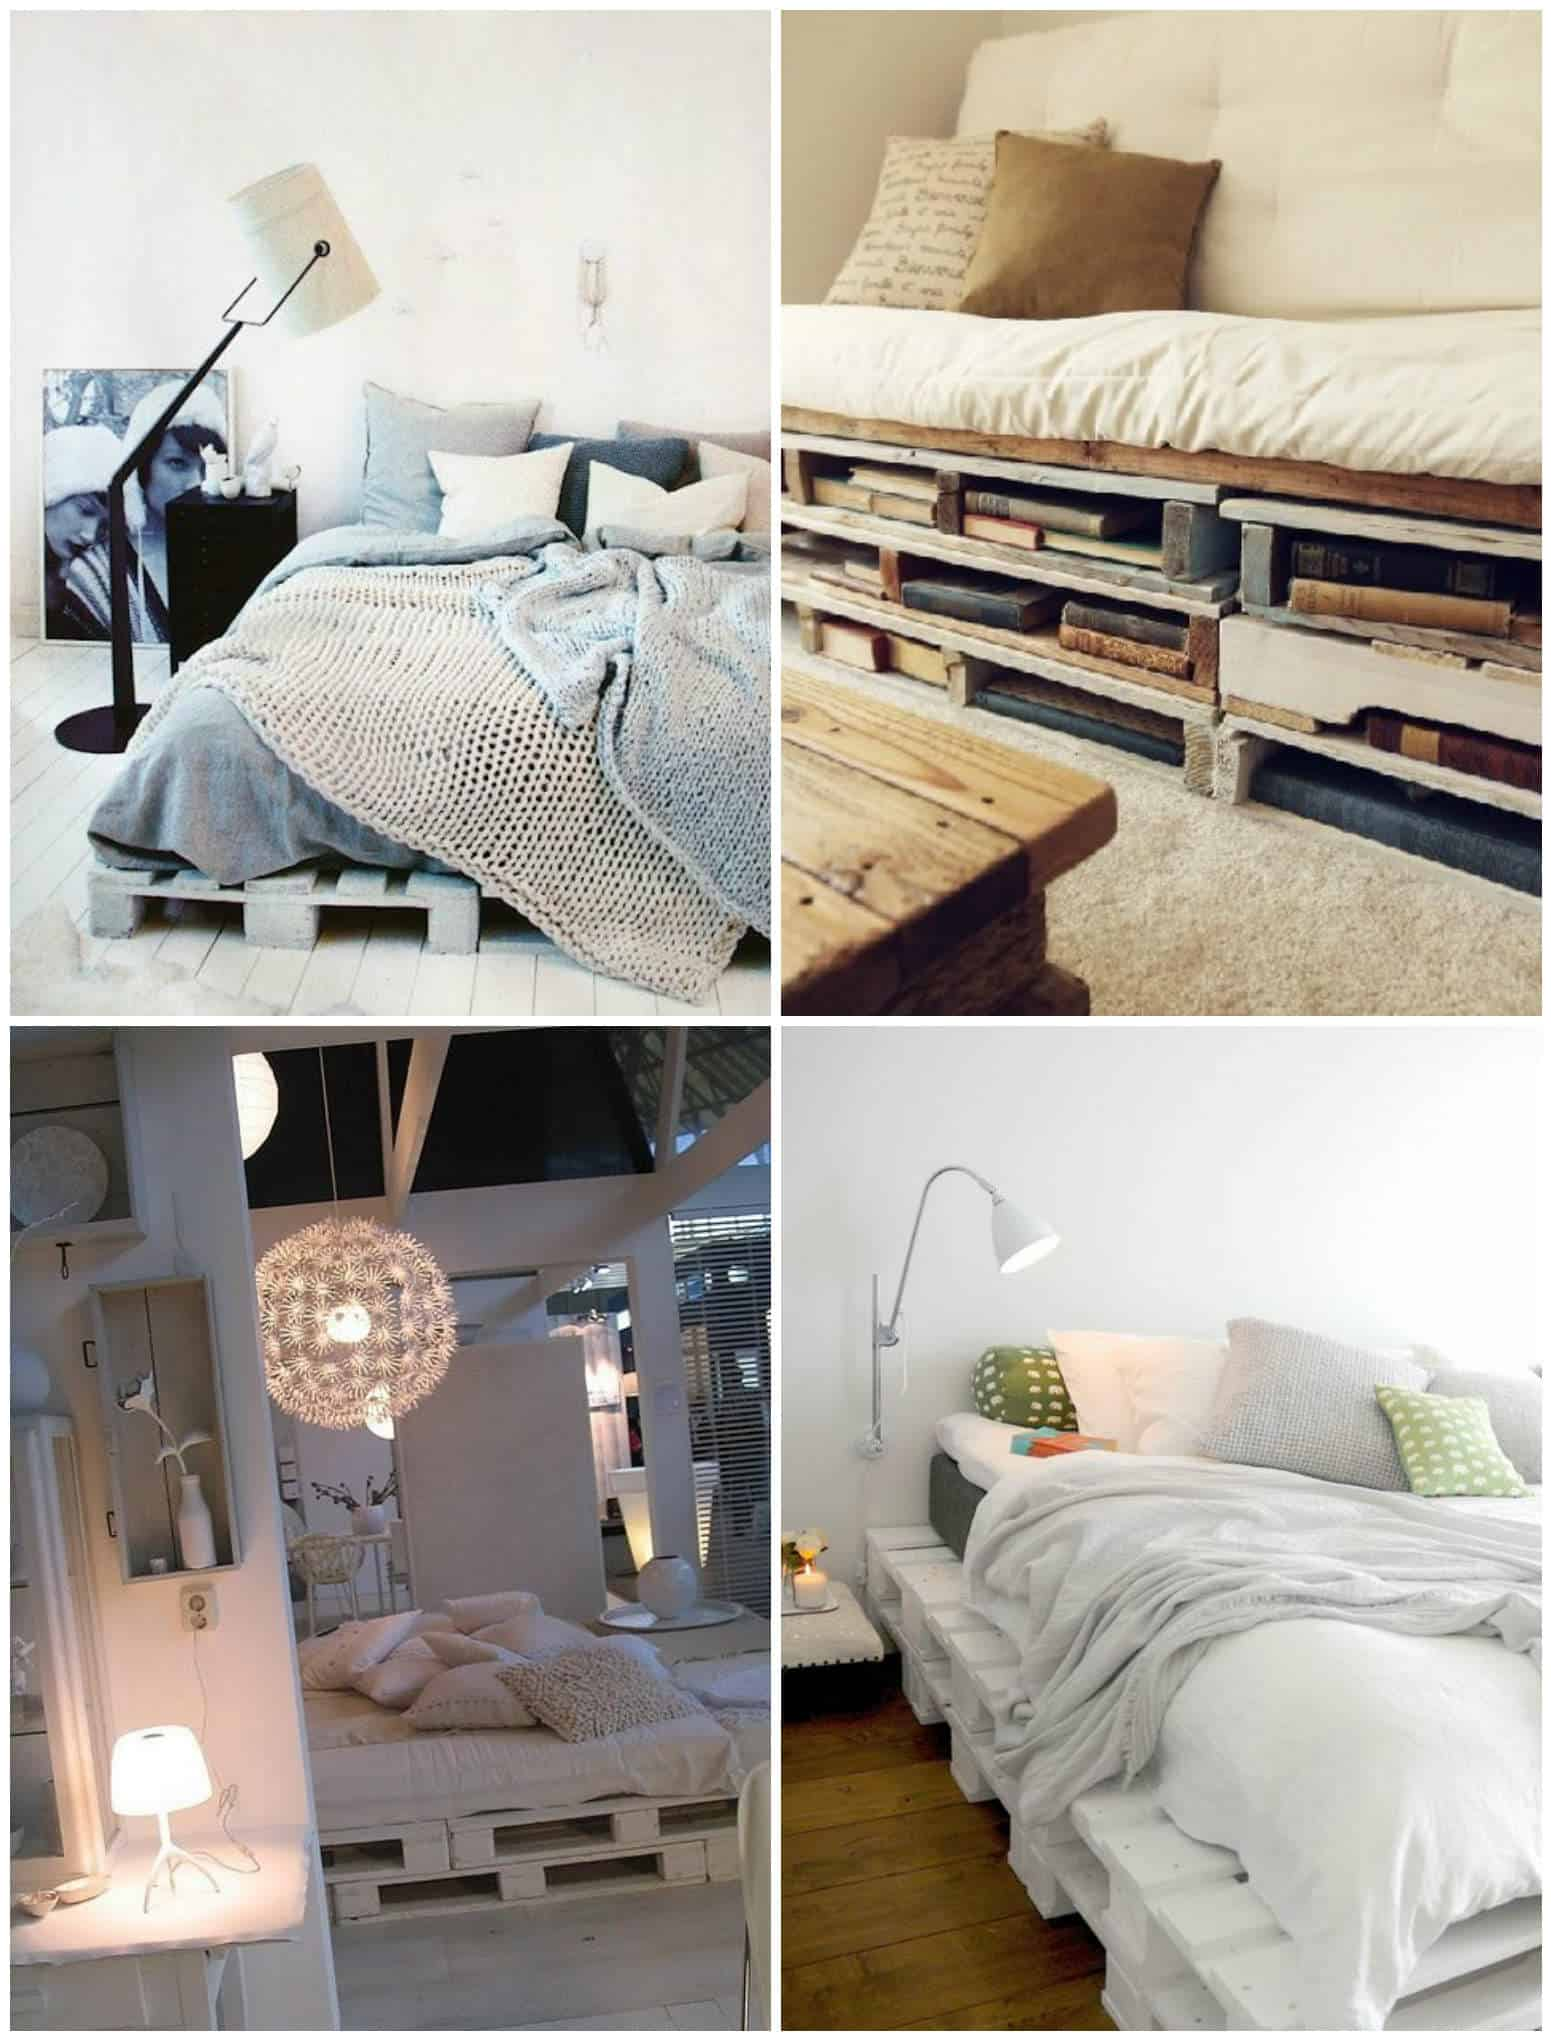 Easy DIY Ideas For Pallet Beds • 1001 Pallets